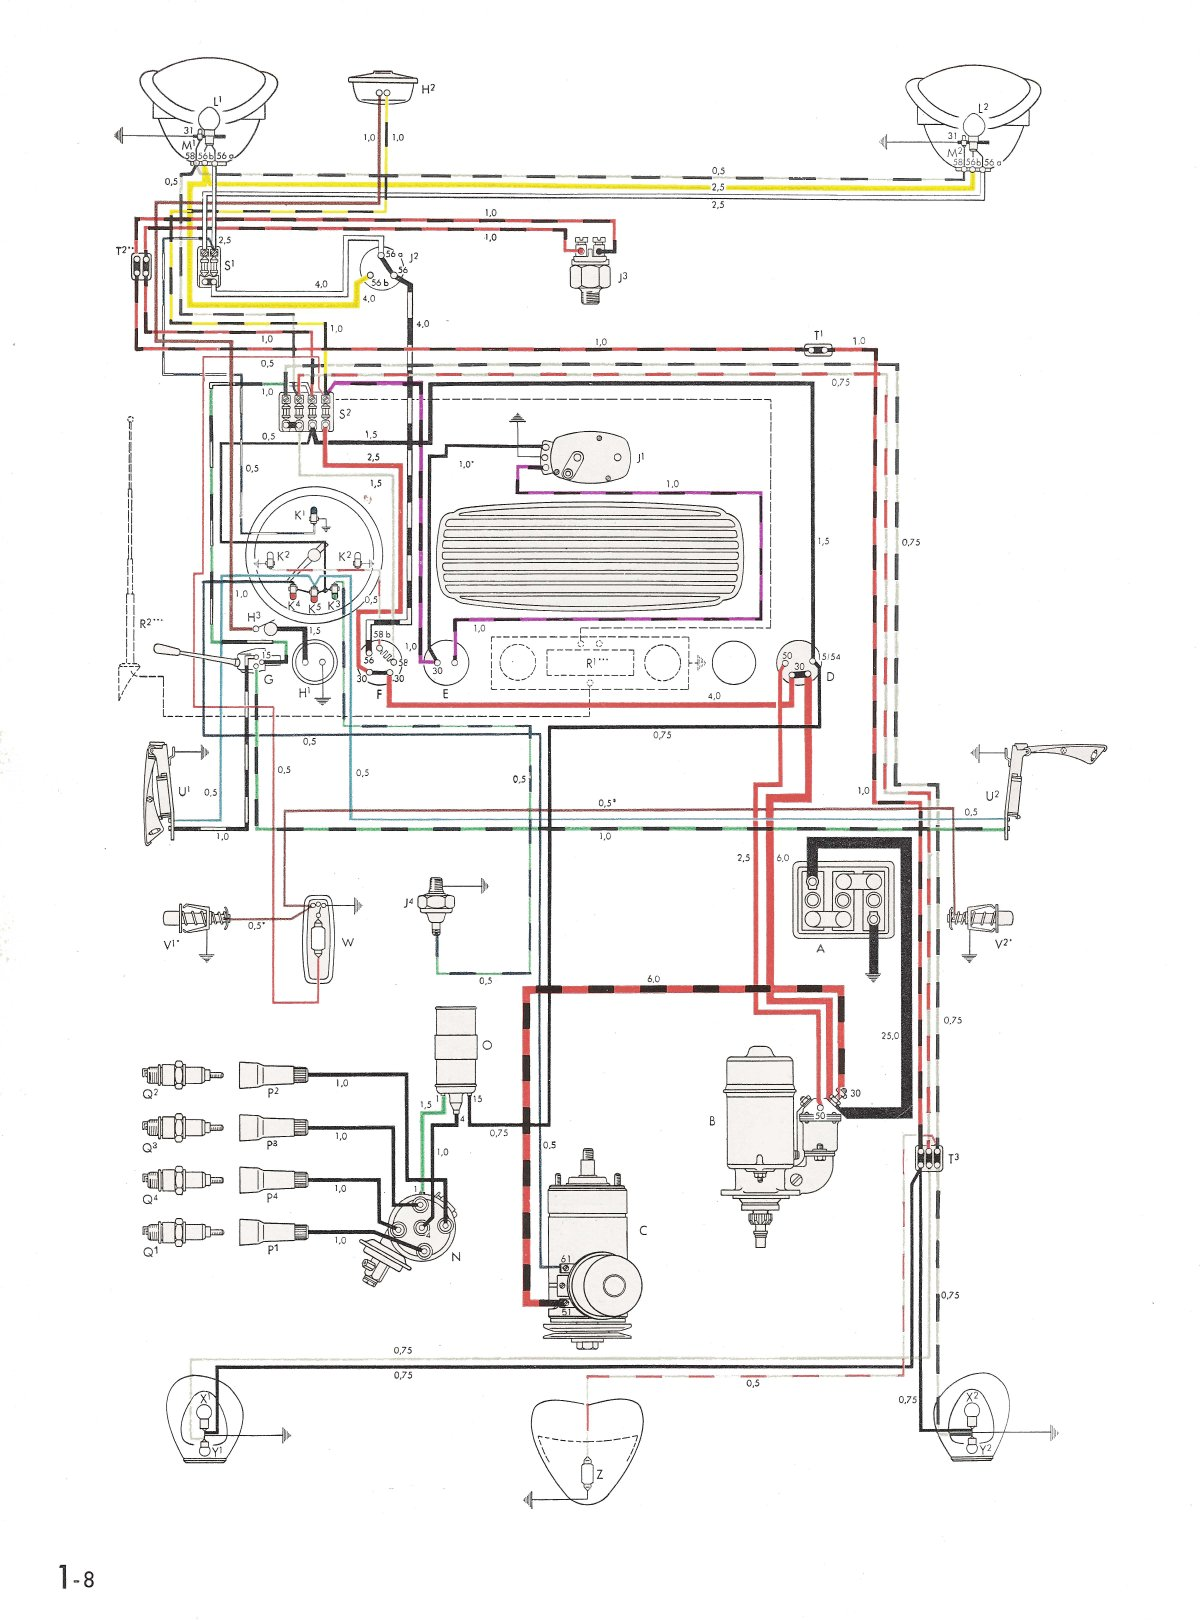 bug54 thesamba com type 1 wiring diagrams vw golf 3 electrical wiring diagram at mifinder.co